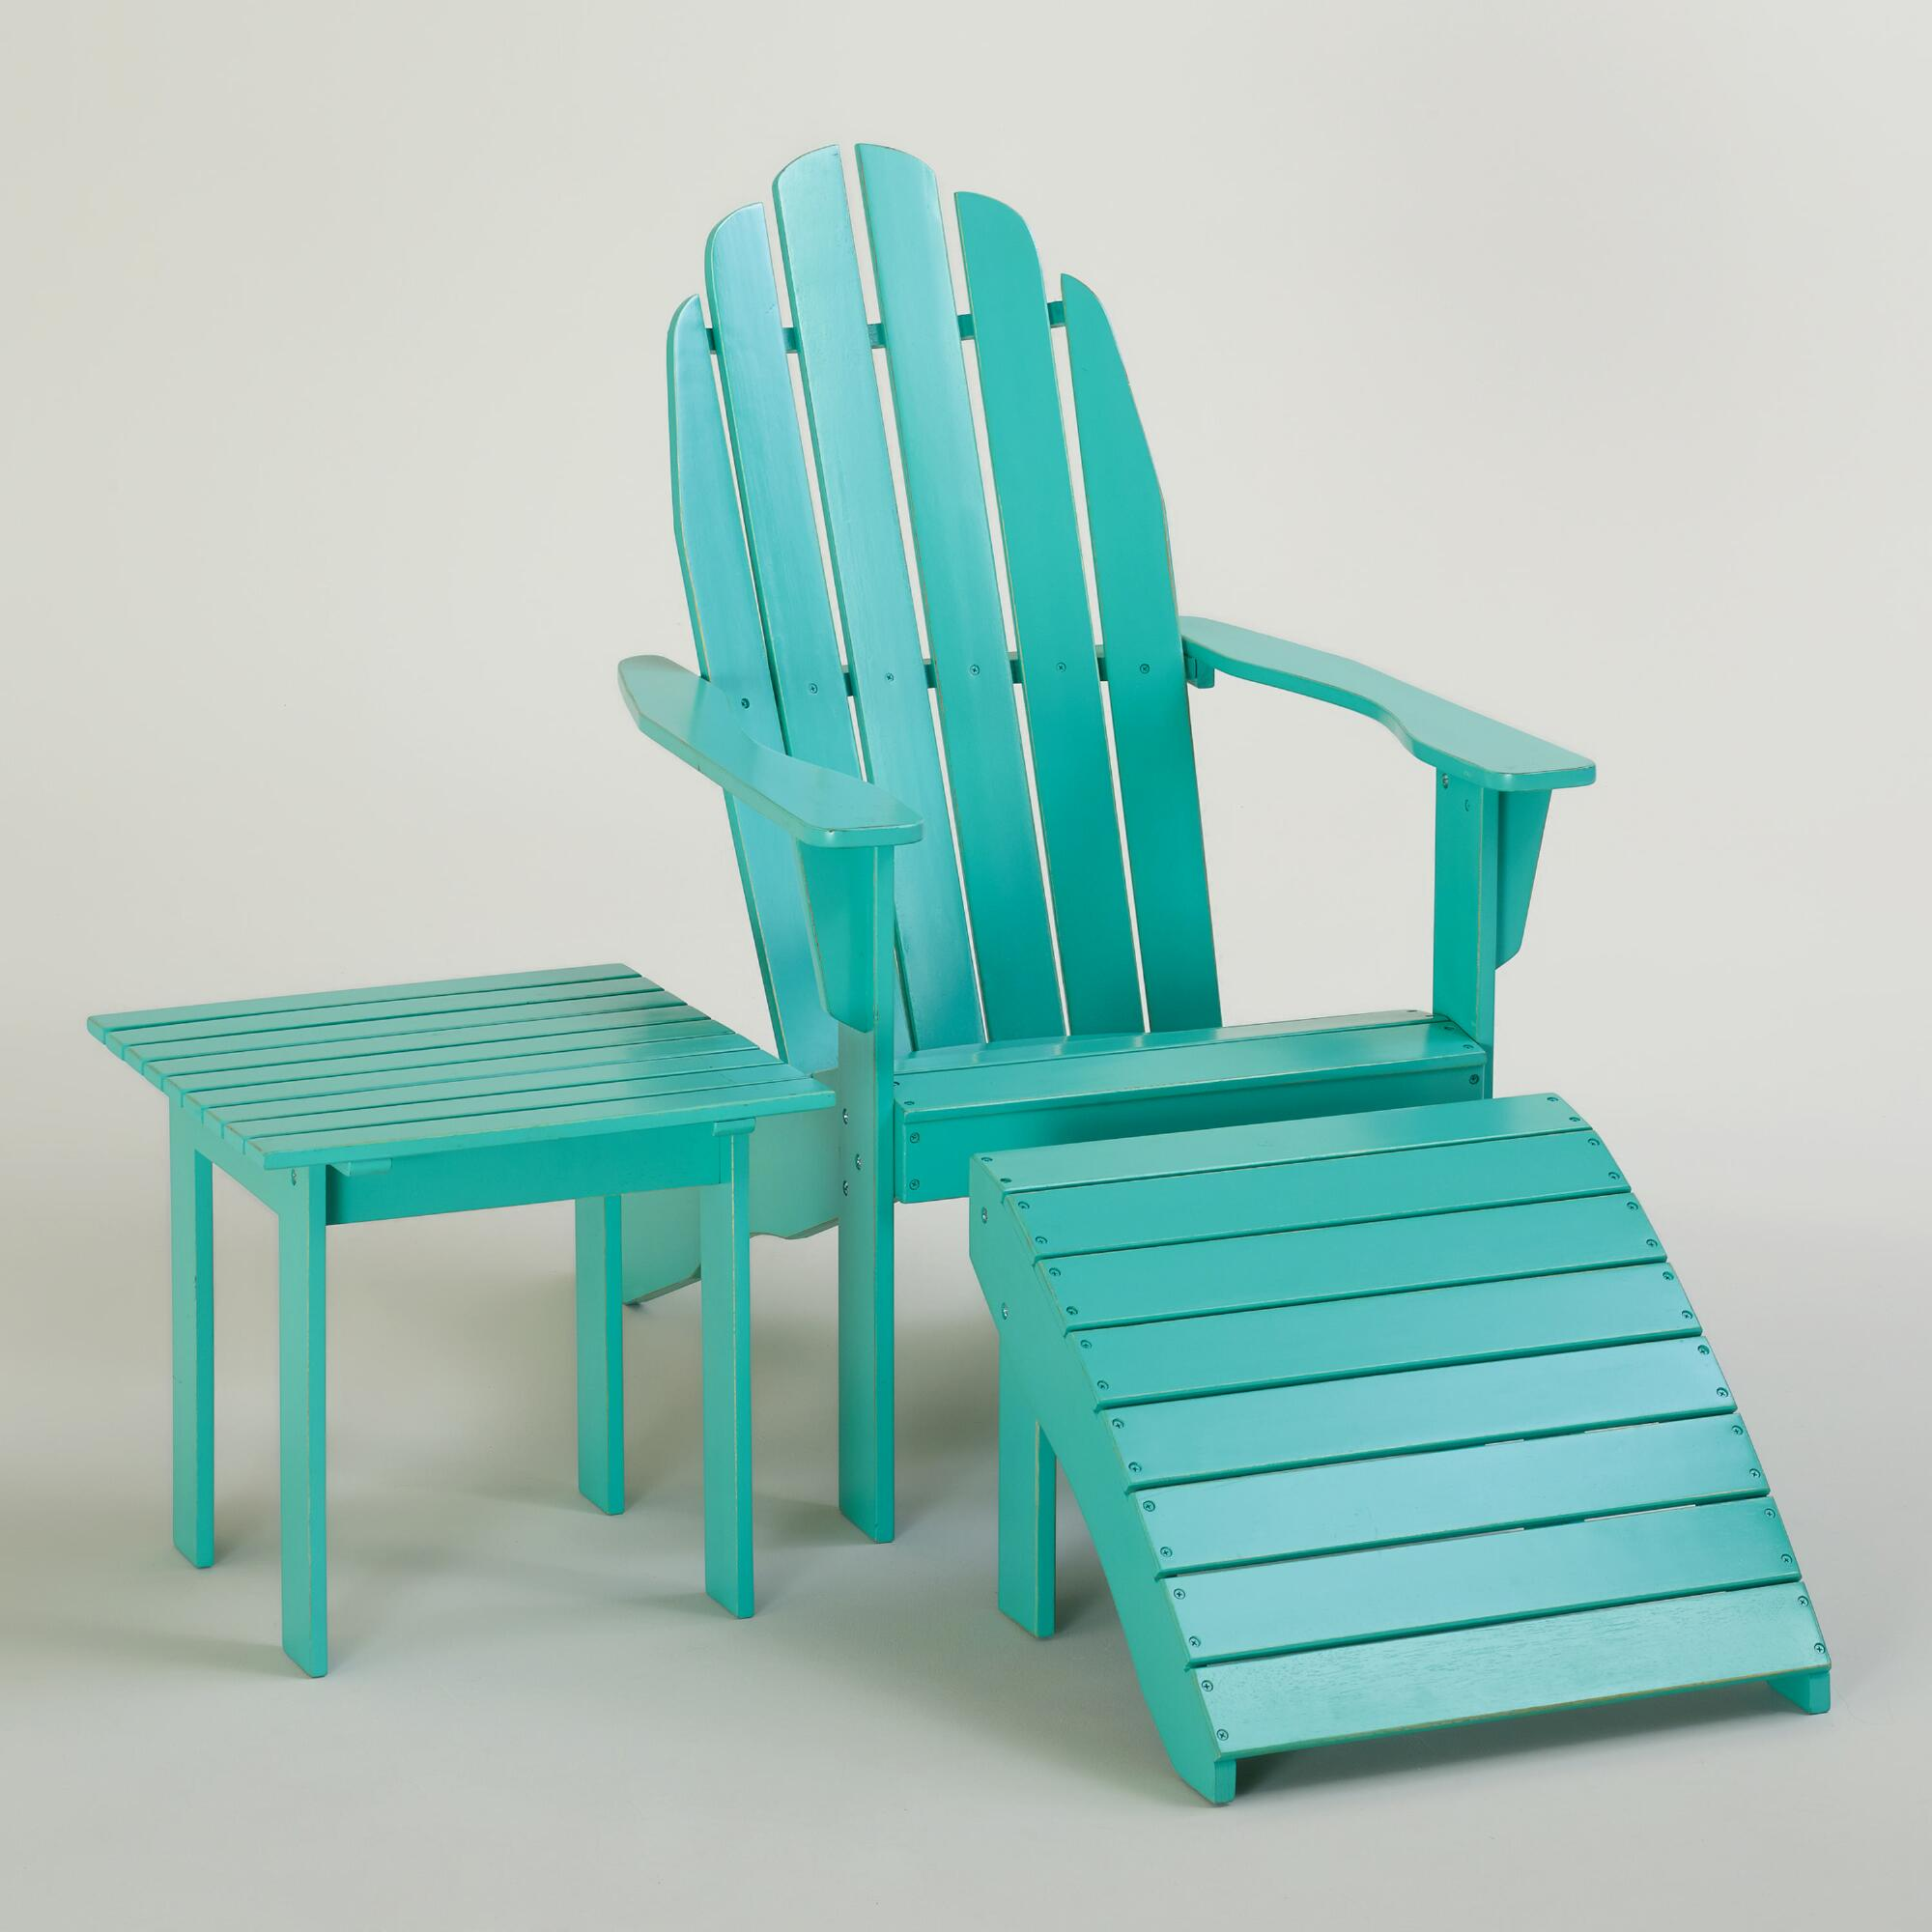 blue turquoise classic adirondack collection world market. Black Bedroom Furniture Sets. Home Design Ideas